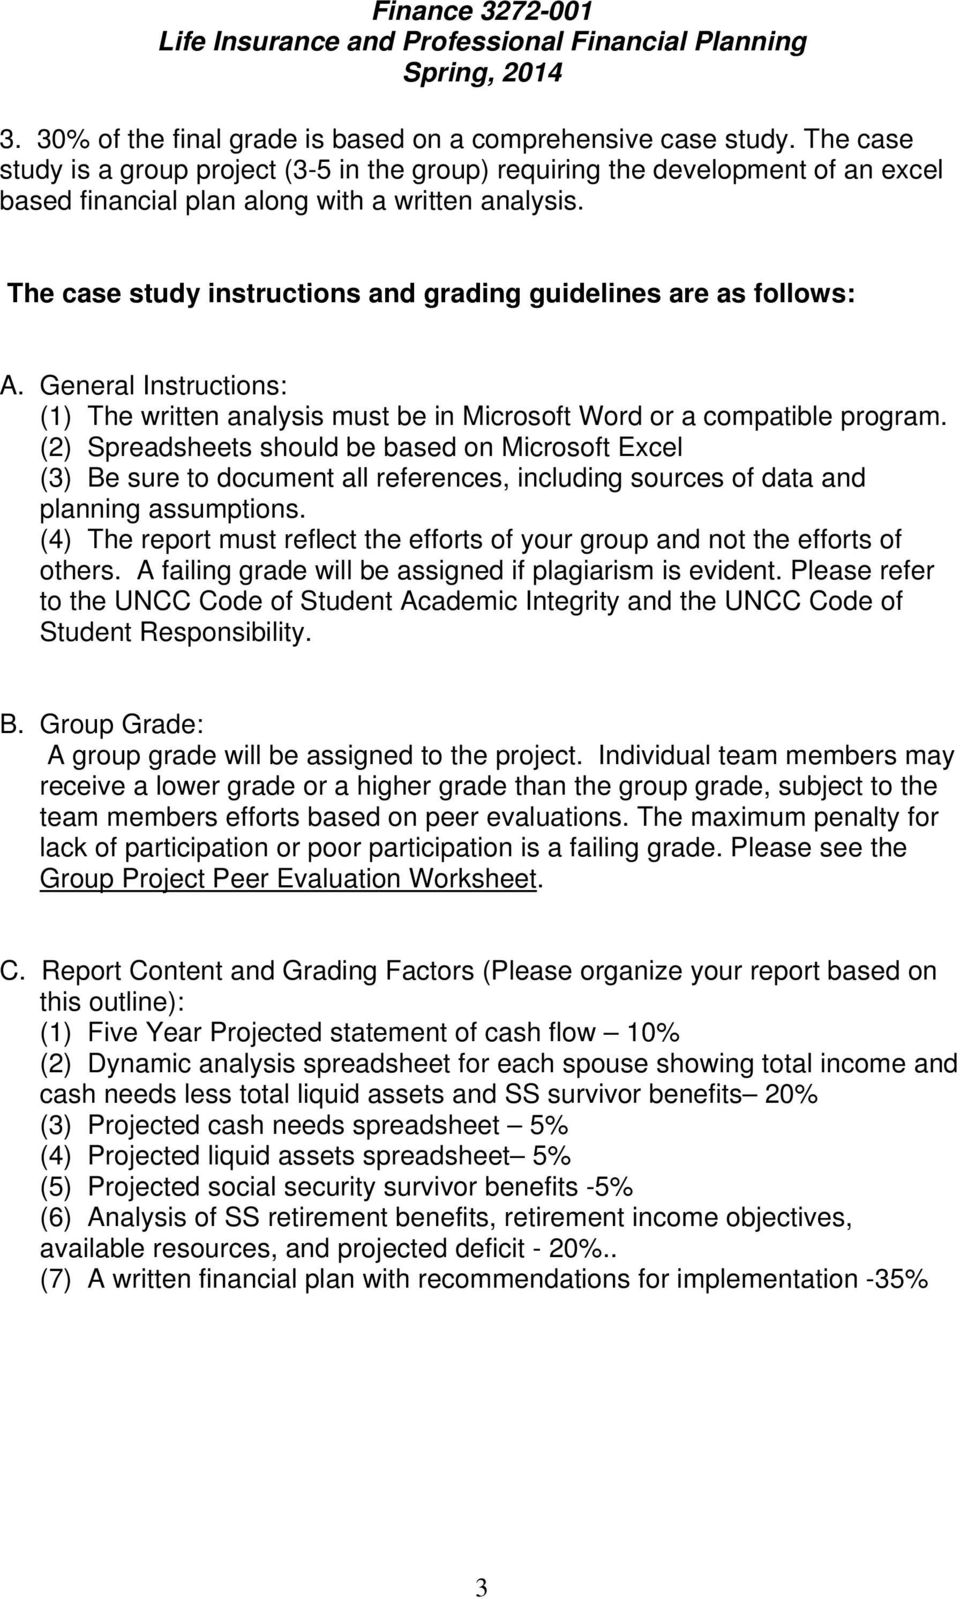 The case study instructions and grading guidelines are as follows: A. General Instructions: (1) The written analysis must be in Microsoft Word or a compatible program.